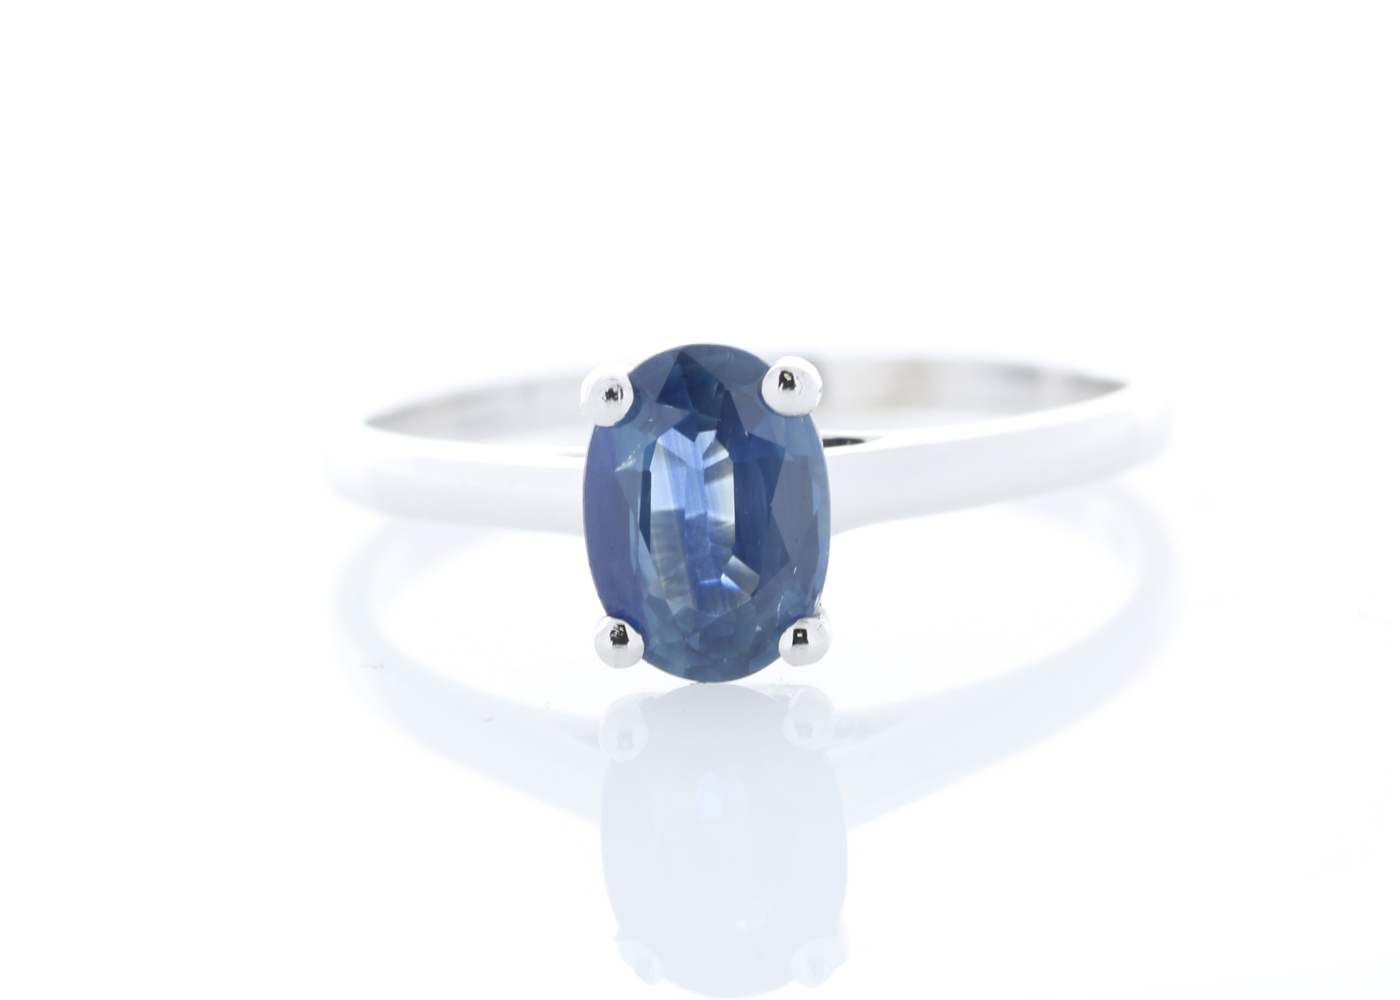 Lot 48 - 9ct White Gold Single Stone Oval Cut Sapphire Ring 1.08 Carats